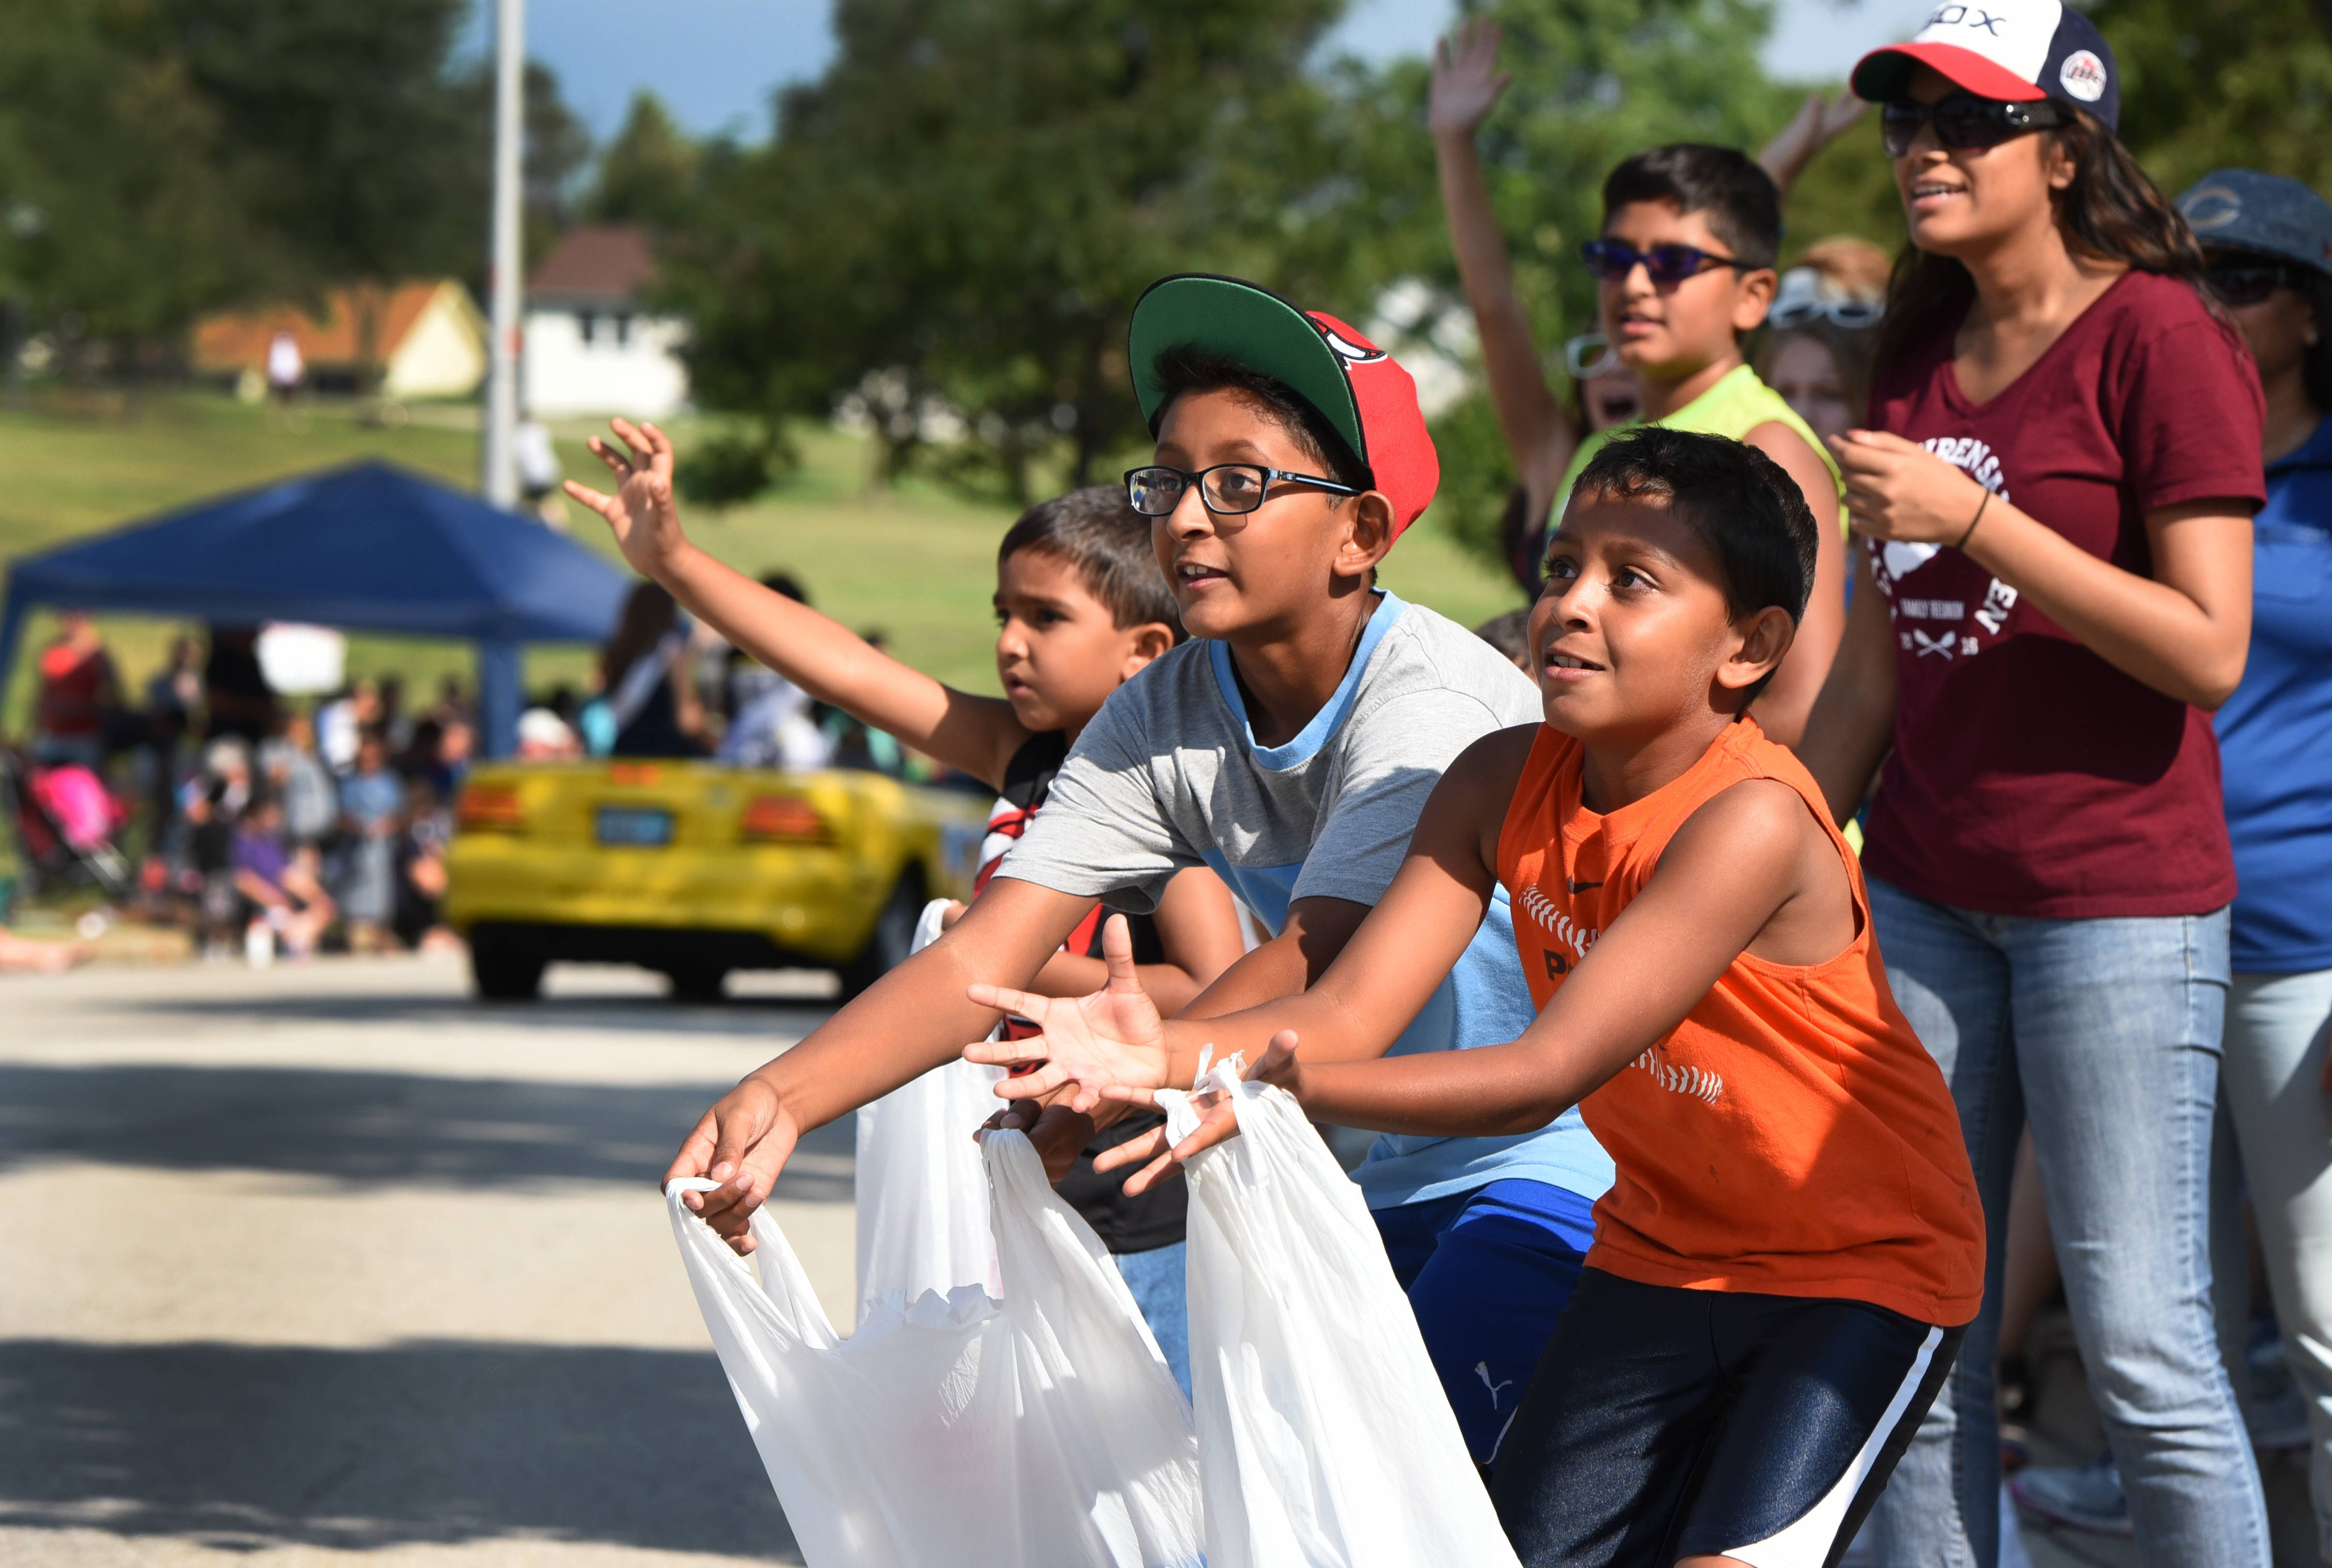 Yup Patel, right, 8 and his brother Veer Patel, 11 of Bartlett position themselves to catch candy during the Schaumburg Septemberfest parade on Monday.